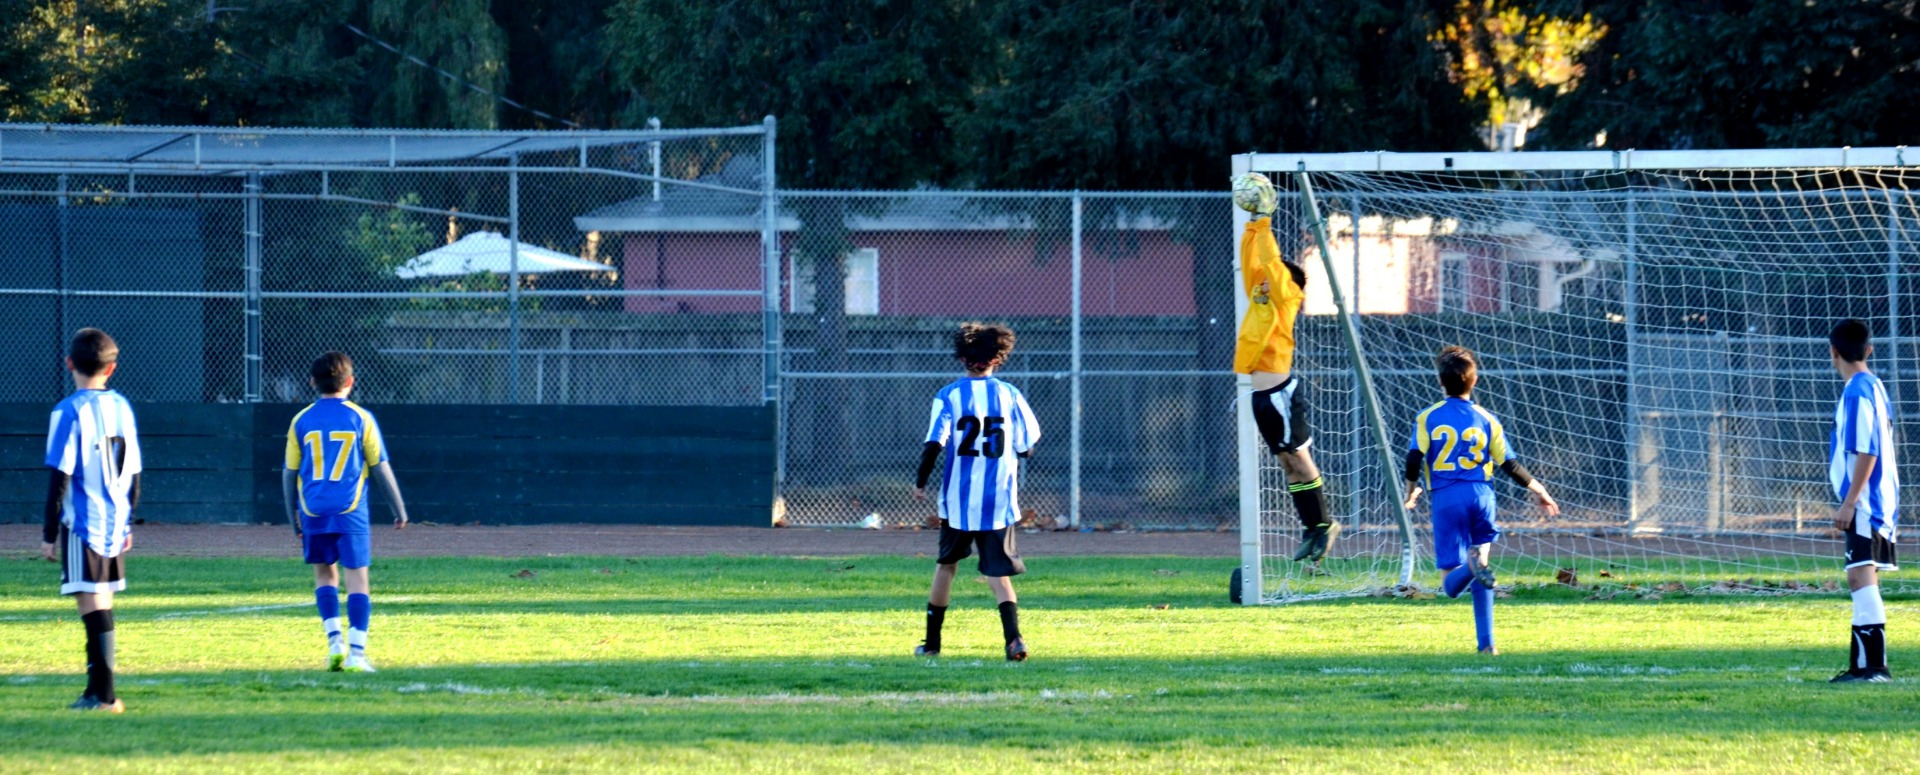 Boys Soccer Goalie making a save